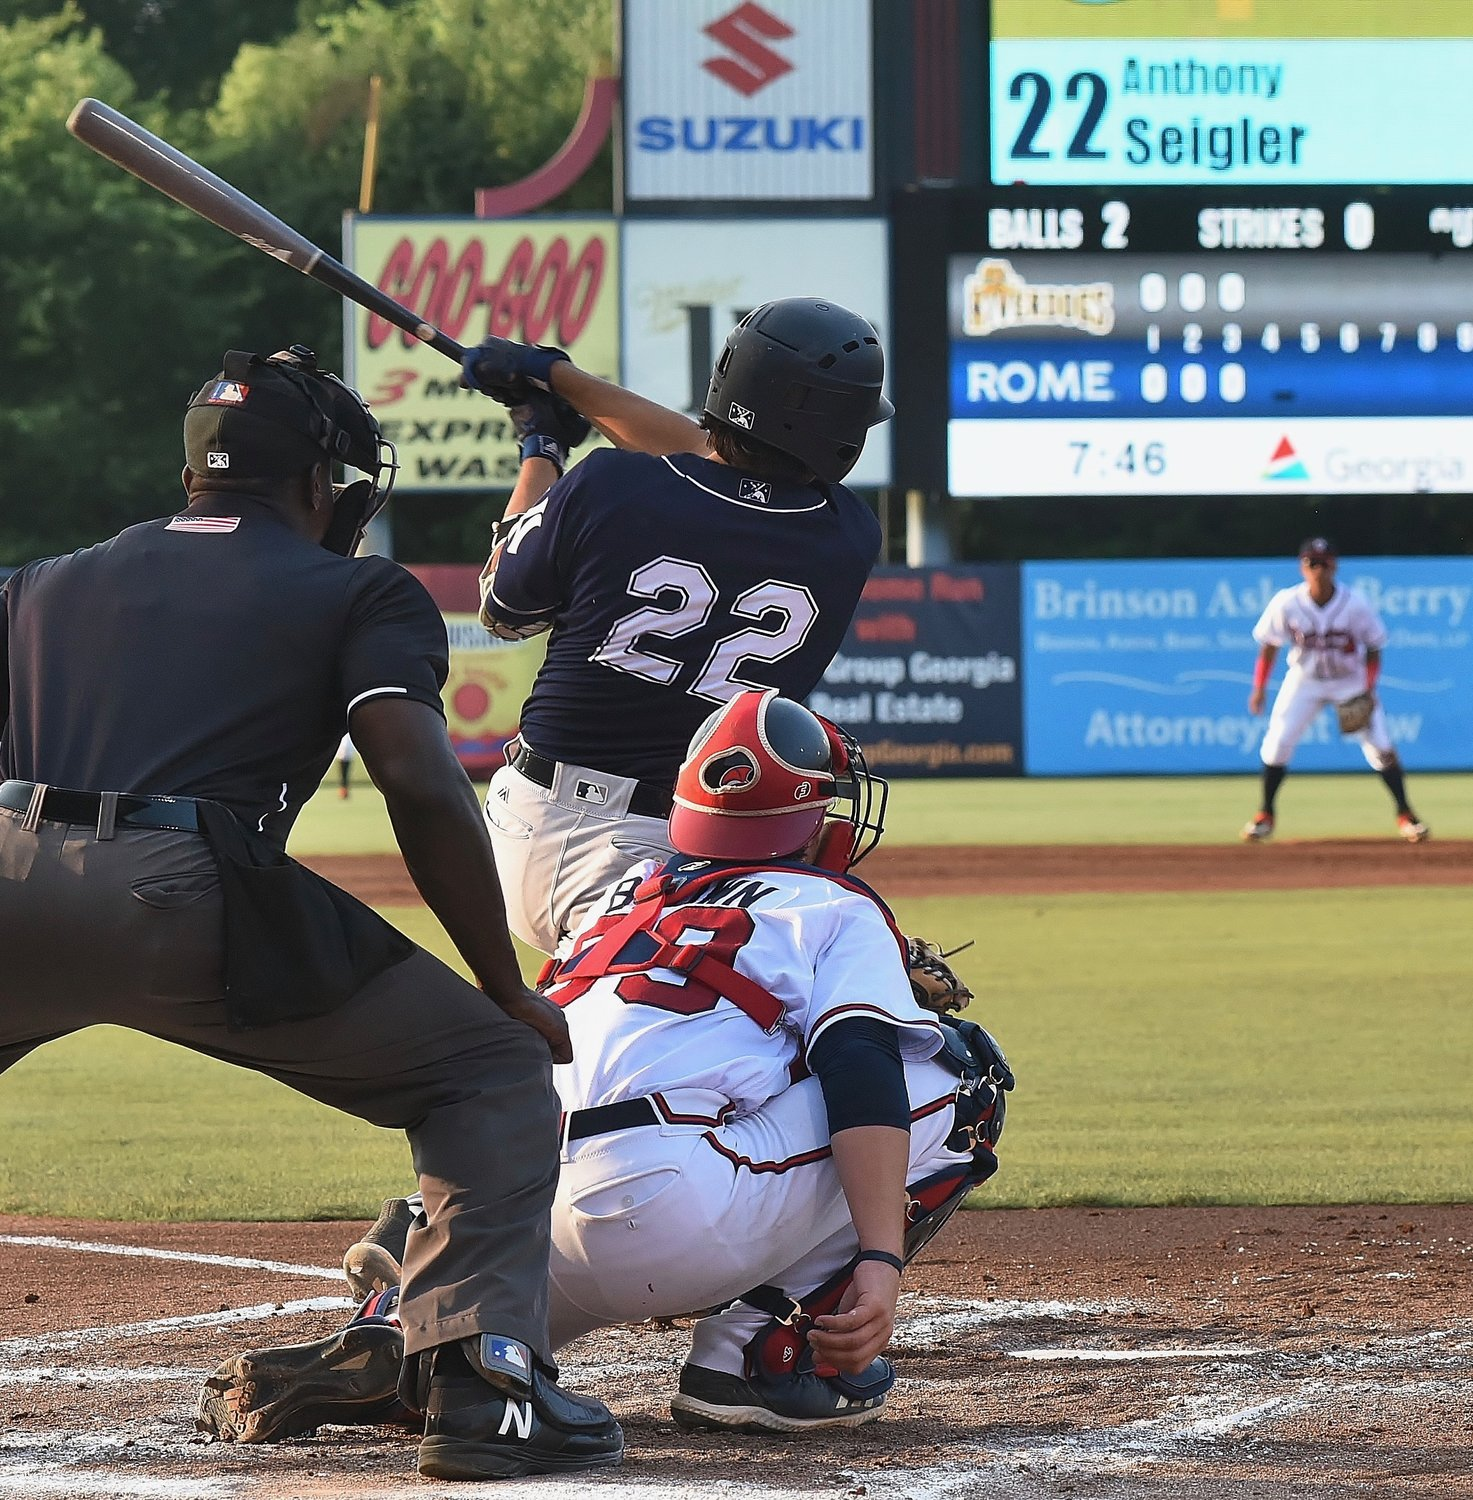 Former Cartersville High product Anthony Seigler made his season debut with the Charleston RiverDogs against the Rome Braves Monday at State Mutual Stadium in Rome. Seigler went 0-for-3 against former Cy Young Award winner Dallas Keuchel, who was making his organizational debut after recently being signed by the Atlanta Braves.